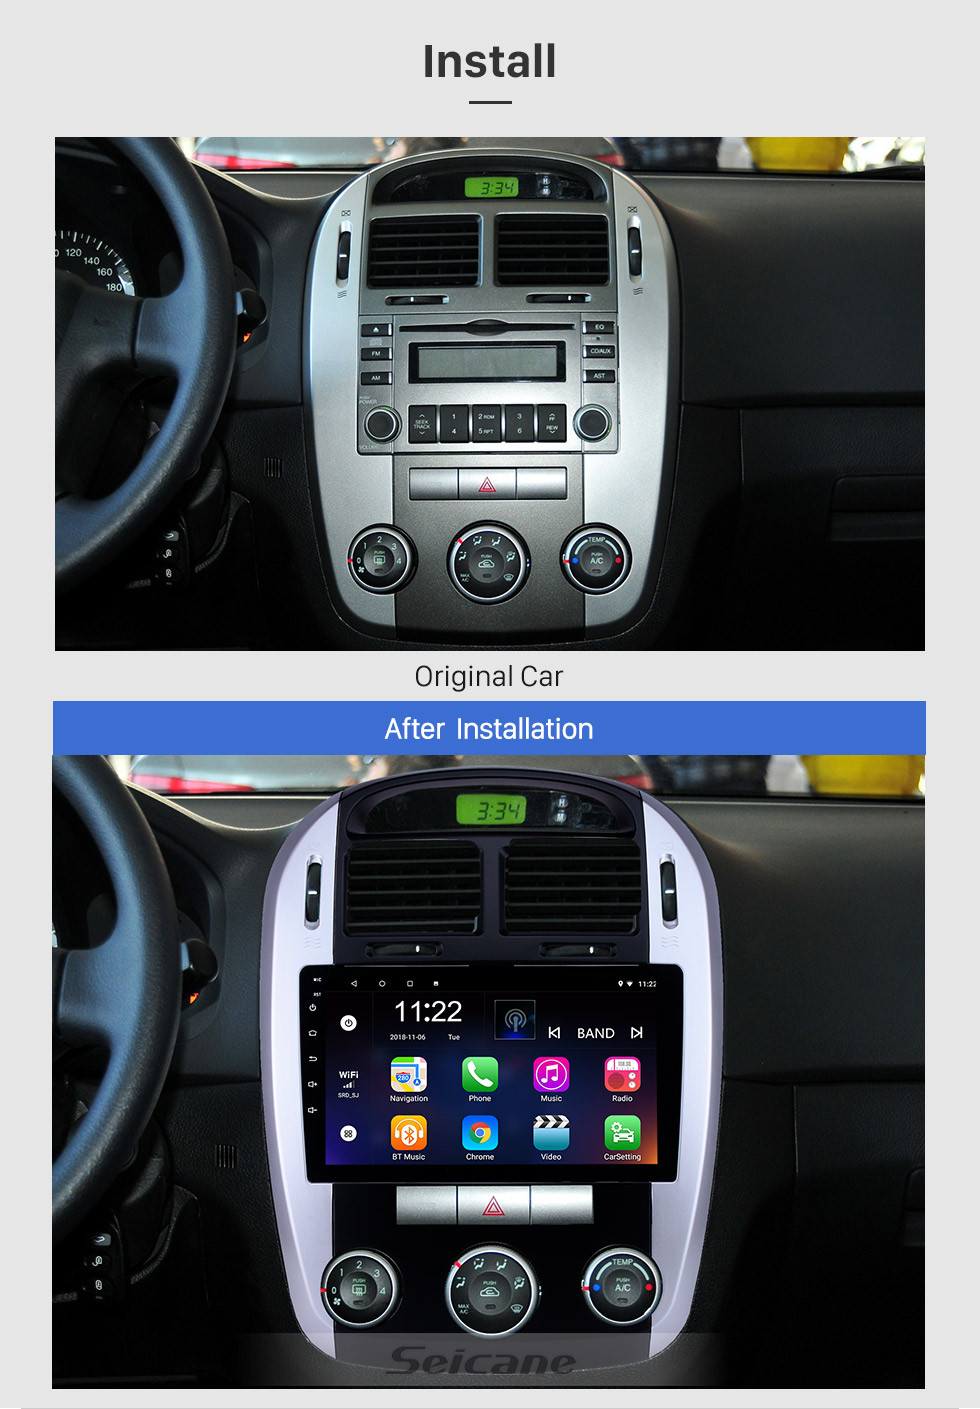 Seicane 2012-2016 Kia Cerato HD Touchscreen 9 inch Android 10.0 GPS Navigation Radio with Bluetooth AUX WIFI USB support DVR Carplay OBD Mirror Link TPMS